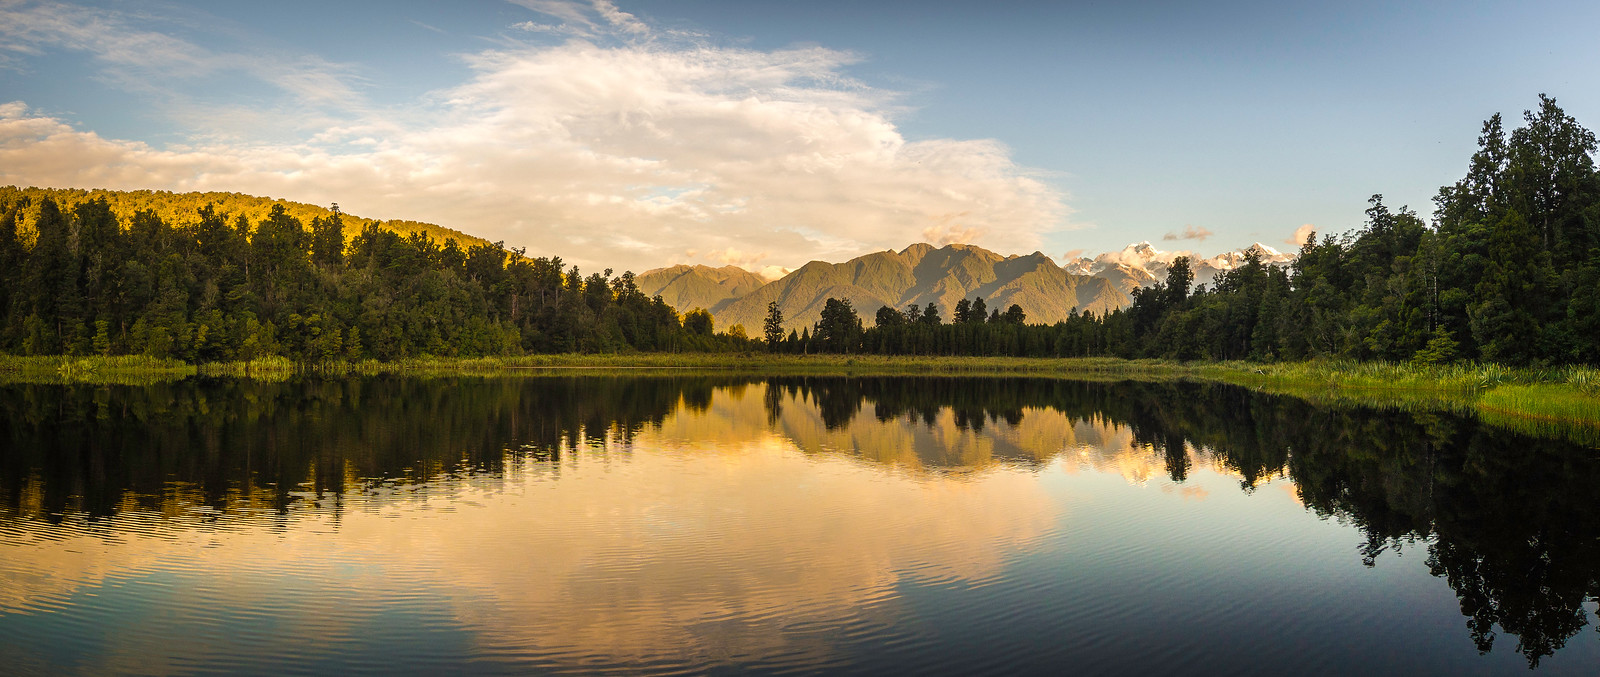 Reflections on the Lake